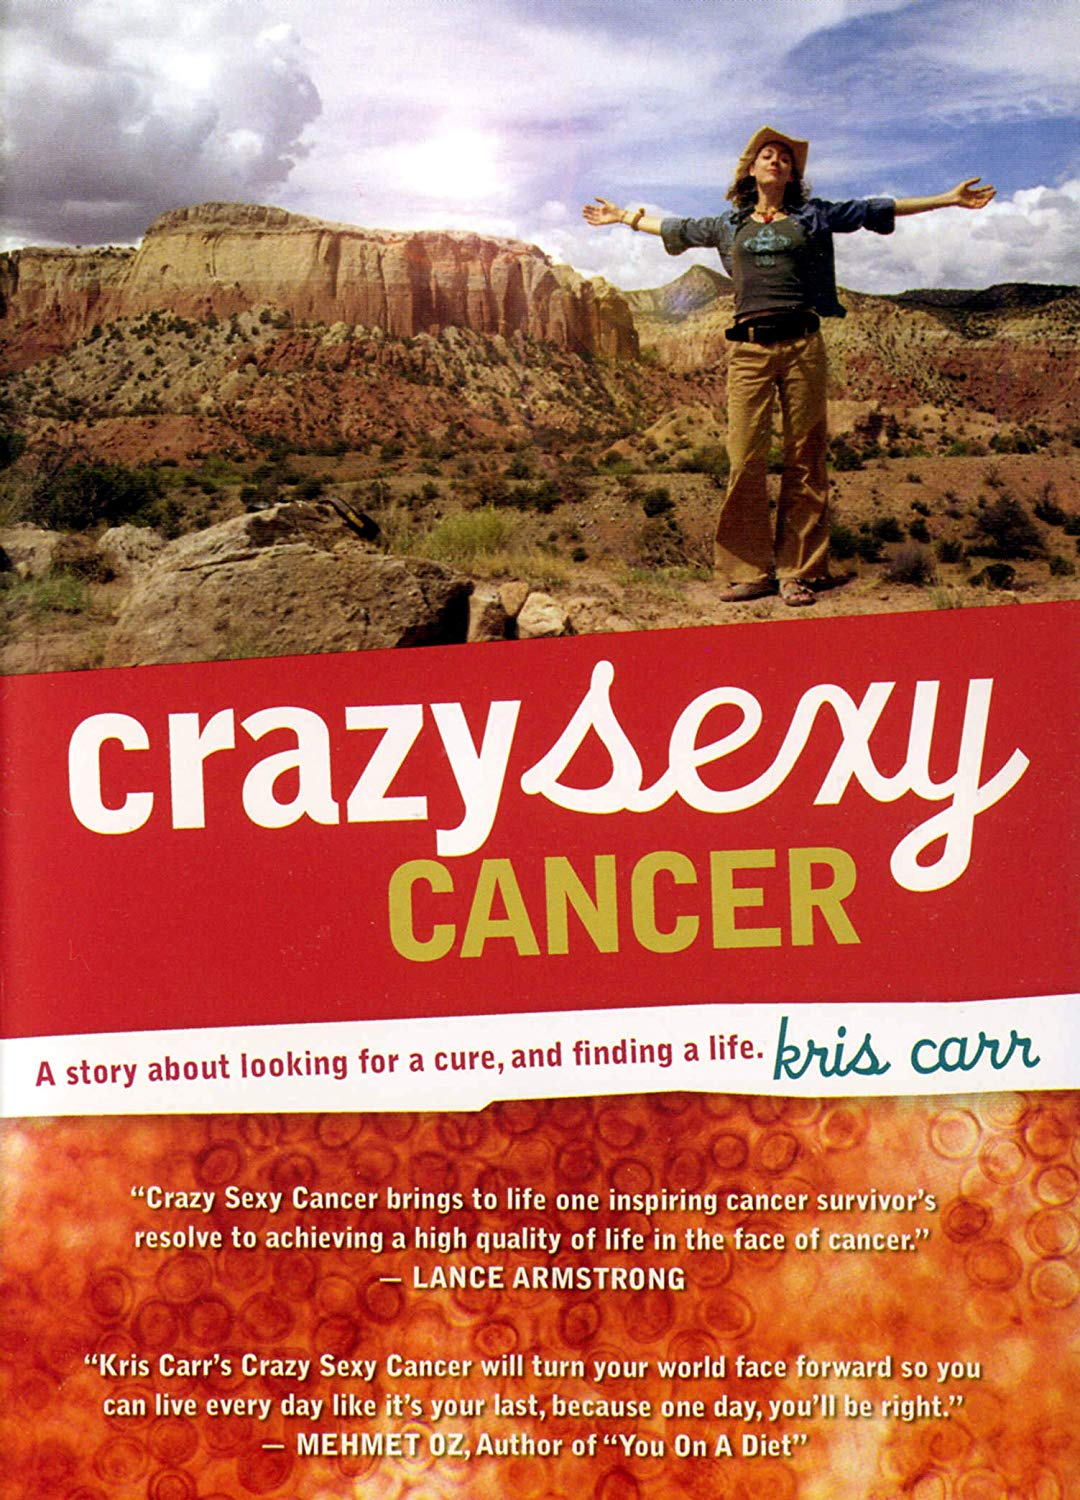 Crazy Sexy Cancer DVD Cover.jpg